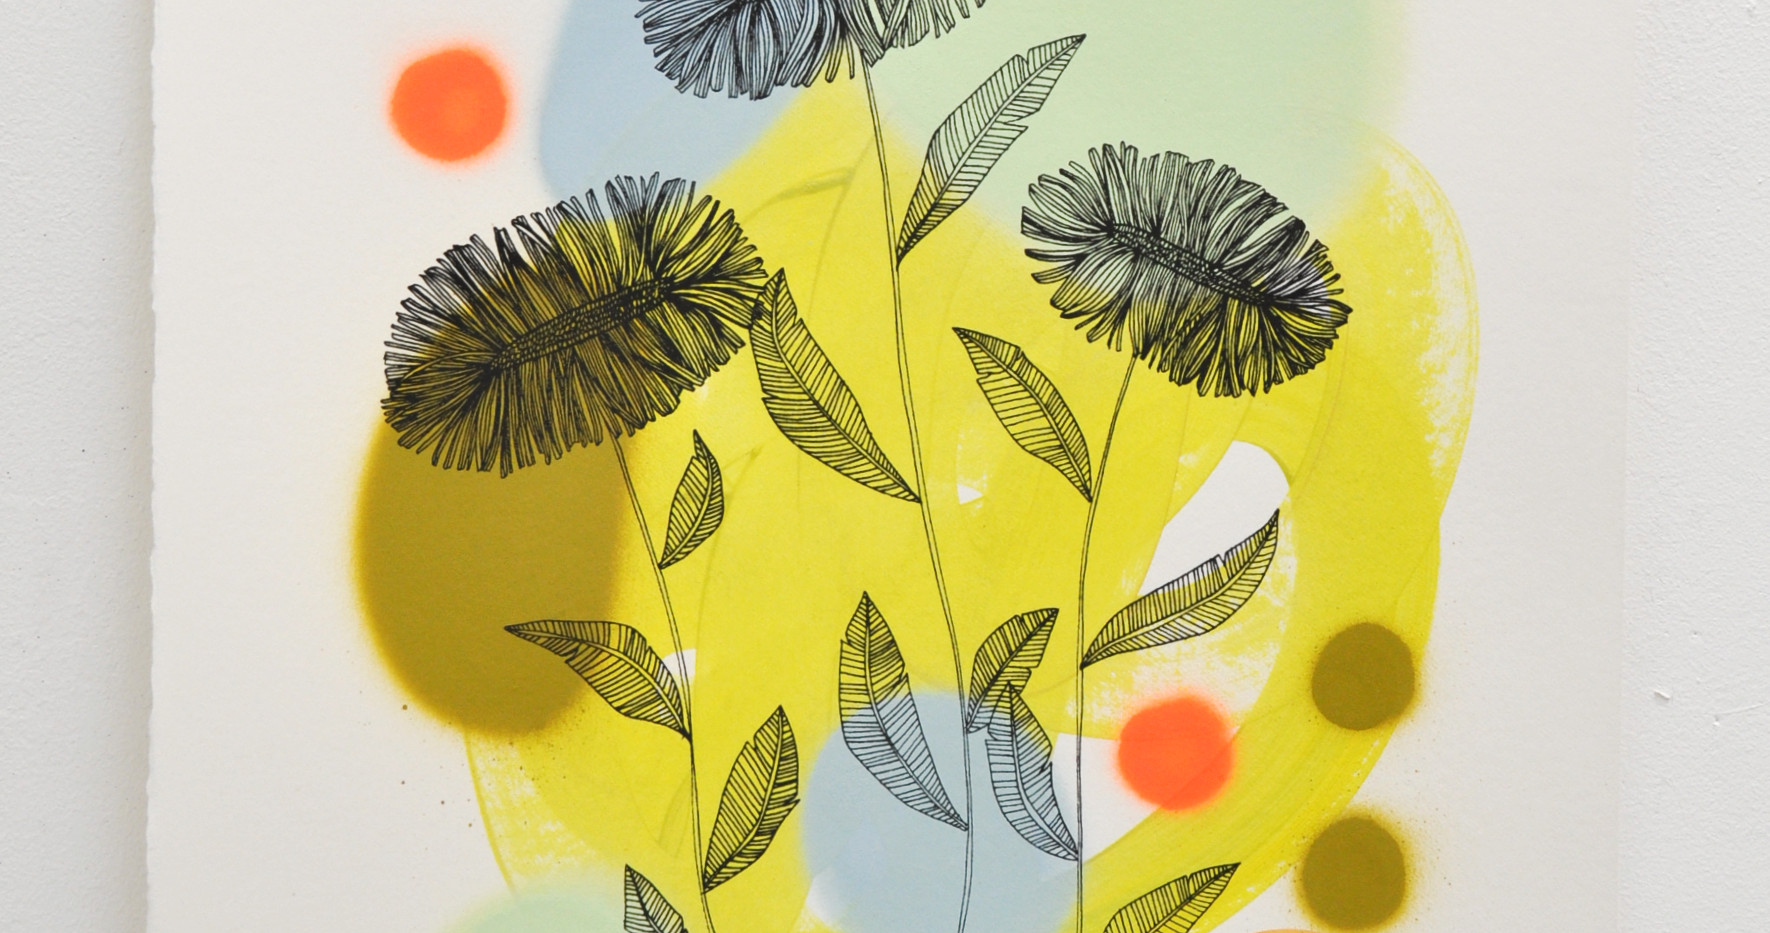 Daisies edition no. 2 of 30, silk screen print on hand painted background, 50 x 35cm